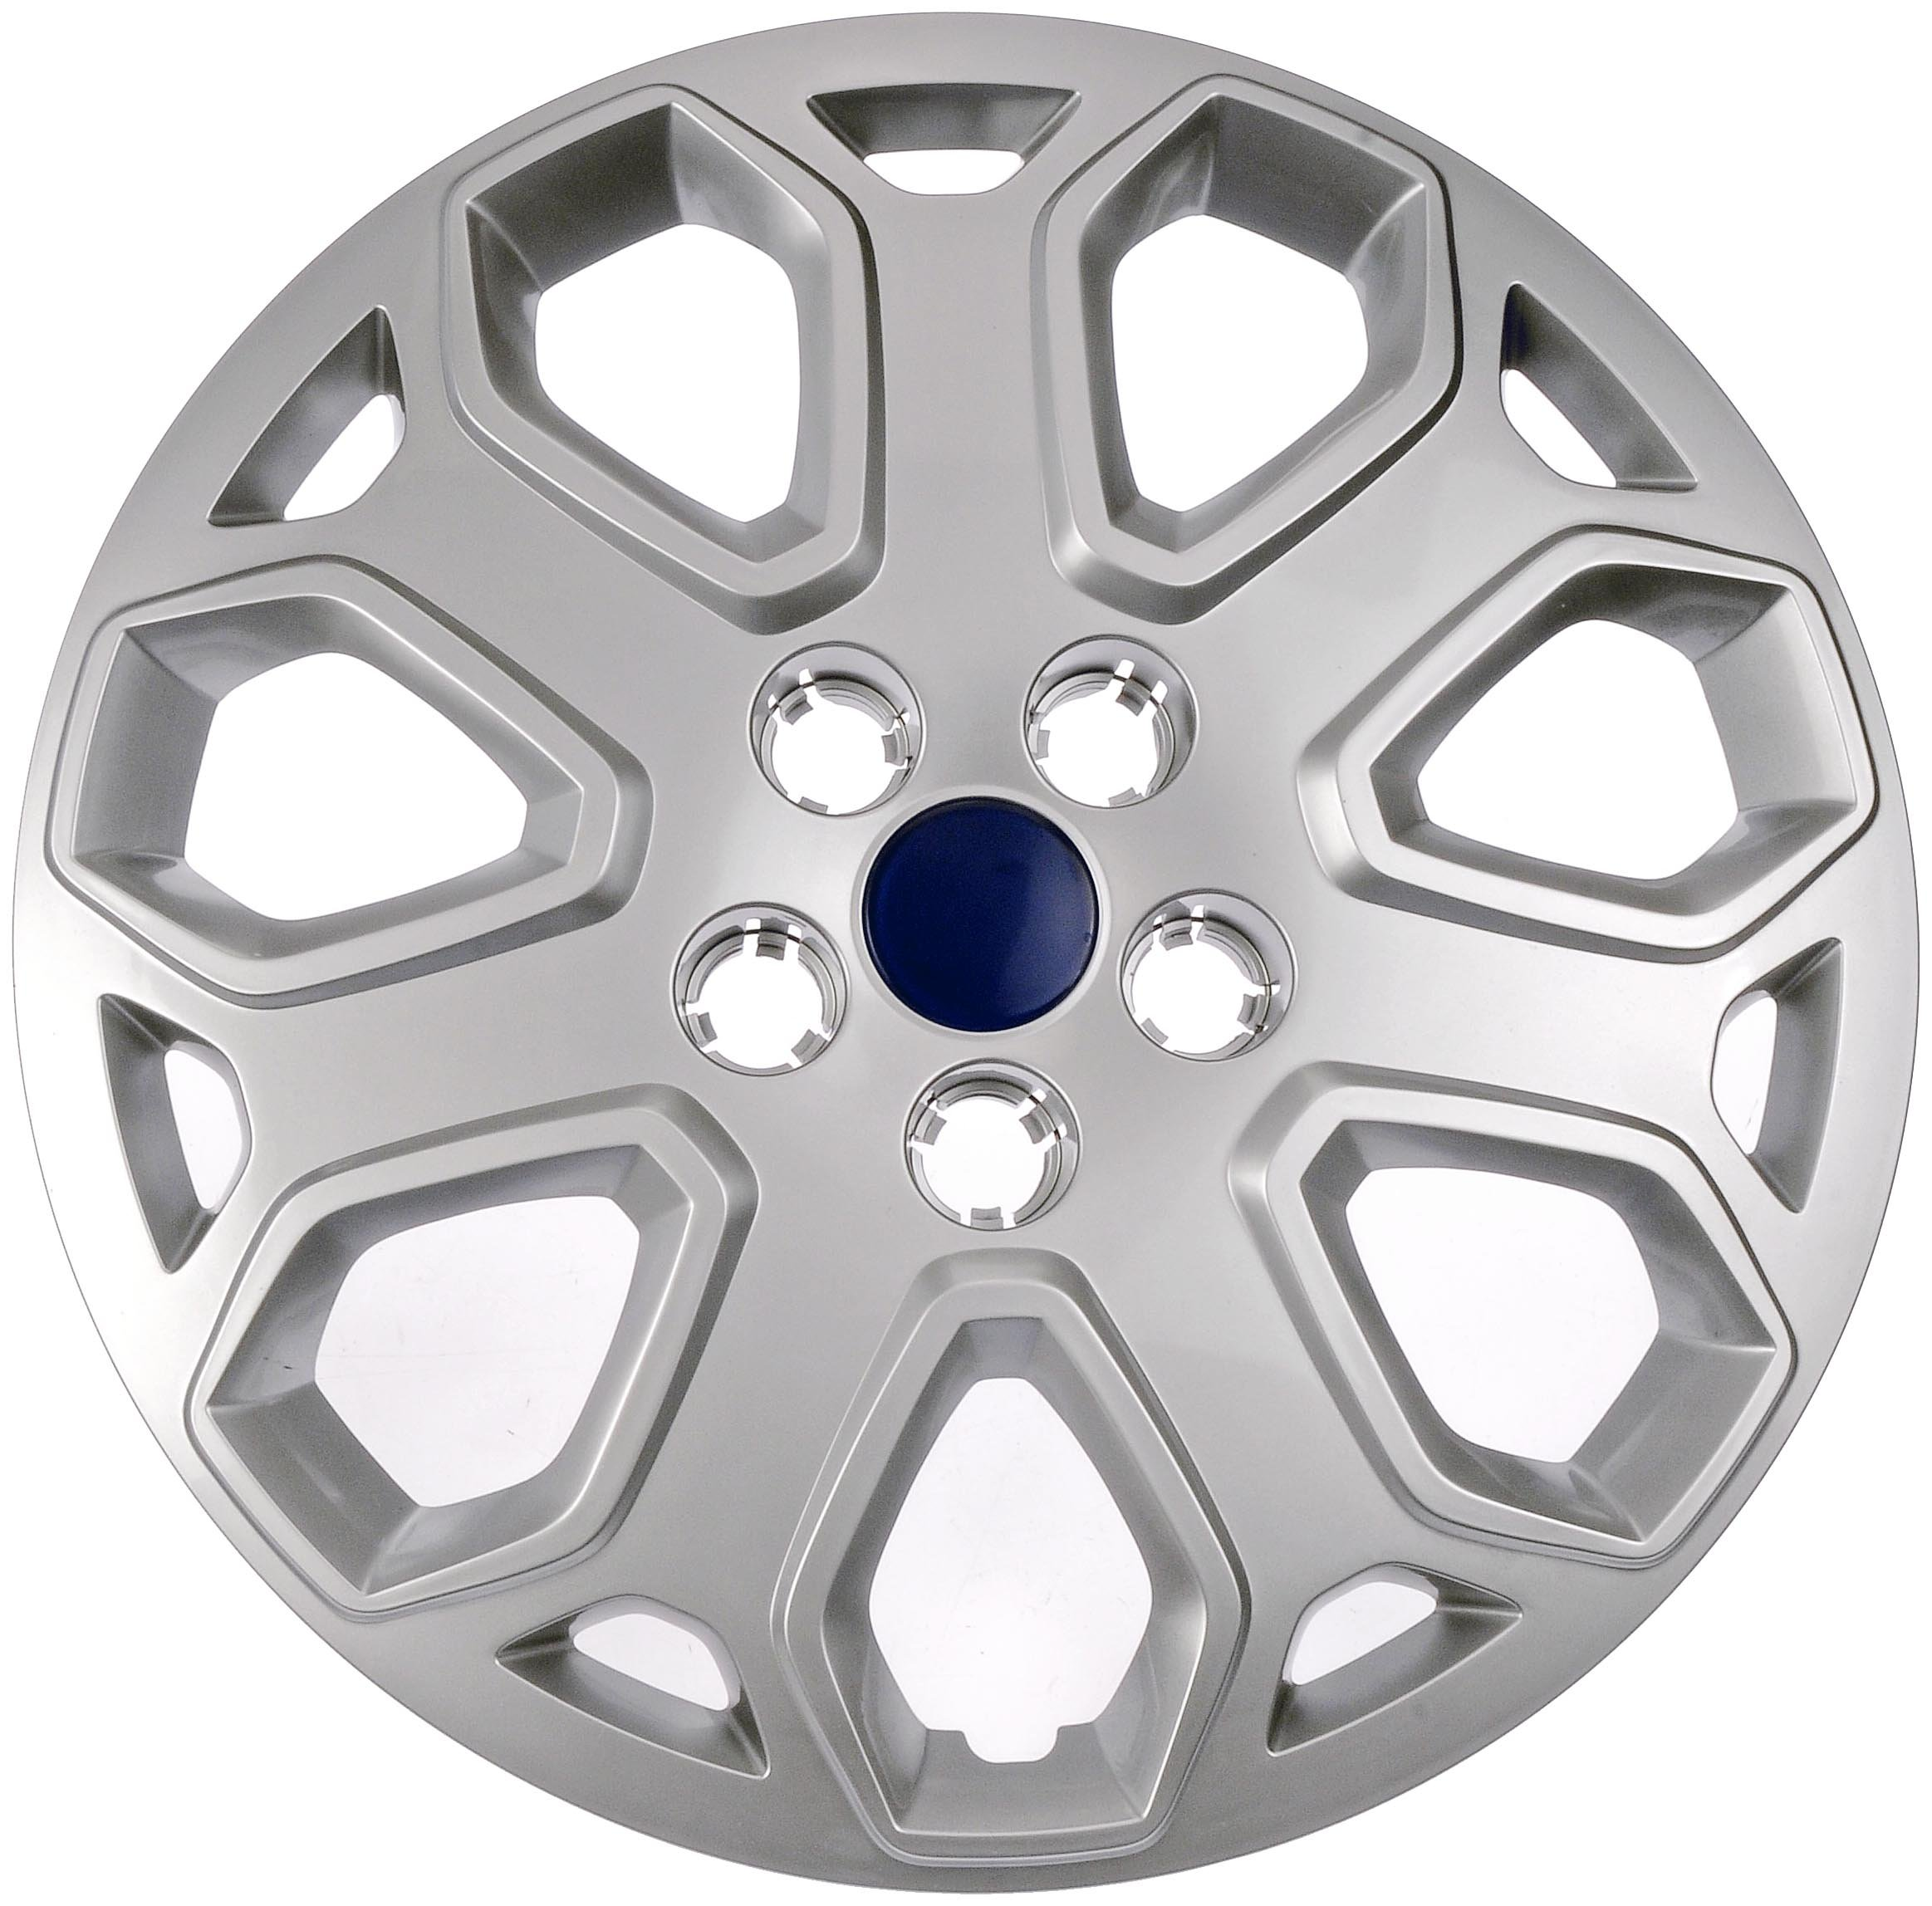 Dorman 910-108 Ford Focus 16 inch Wheel Cover Hub Cap